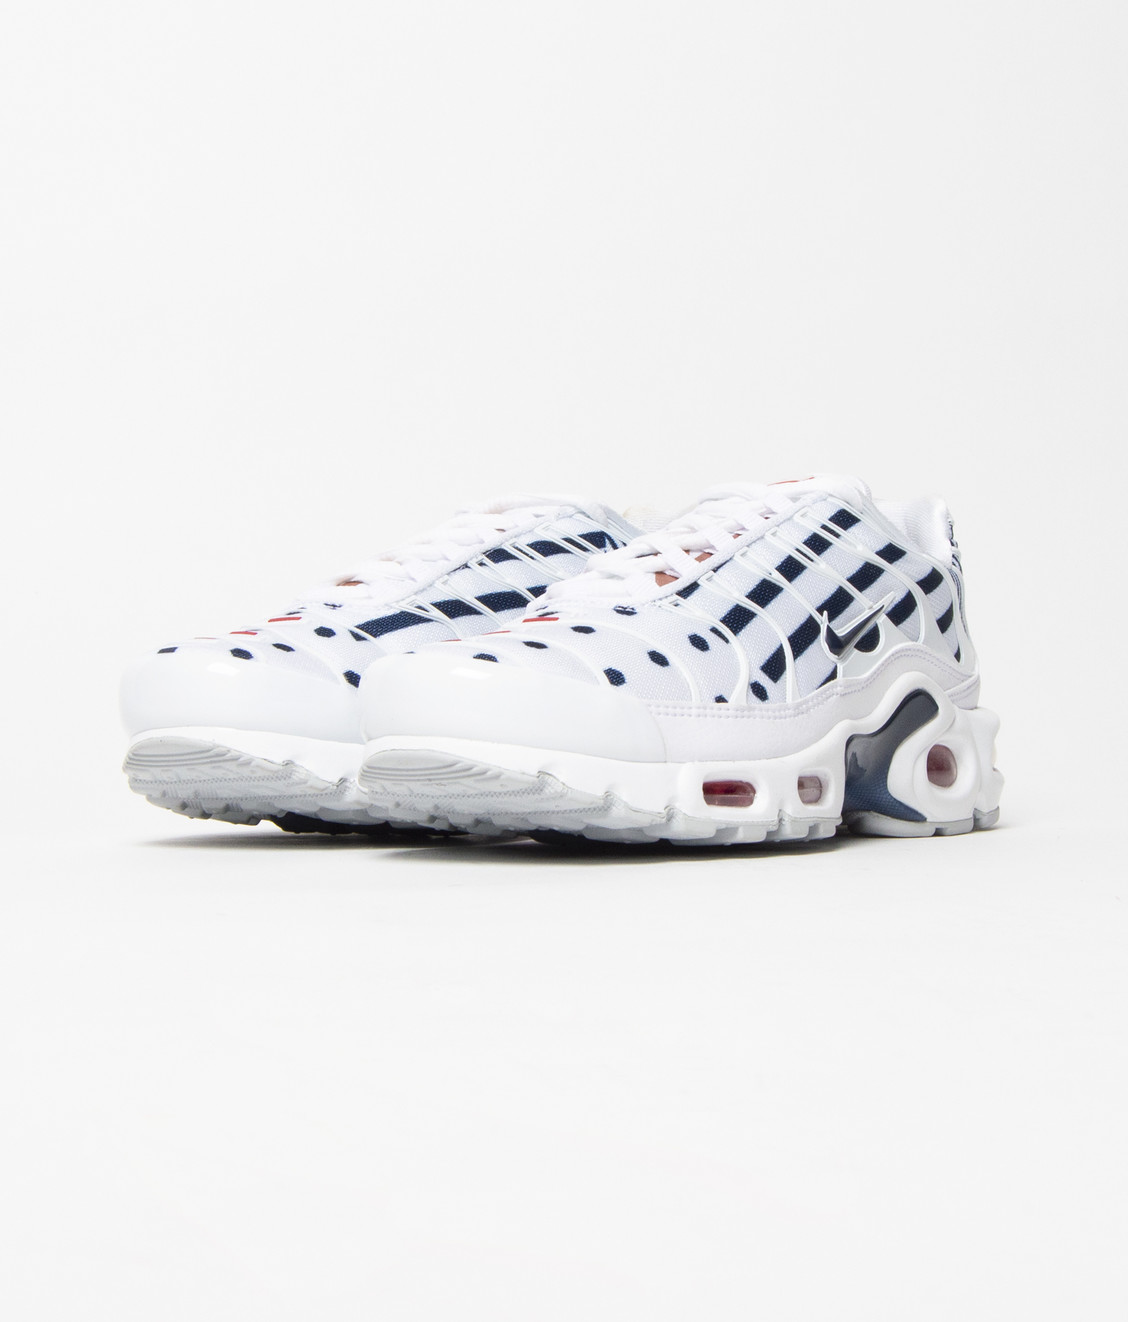 Nike Nike W Air Max Plus Tn White Midnight Navy